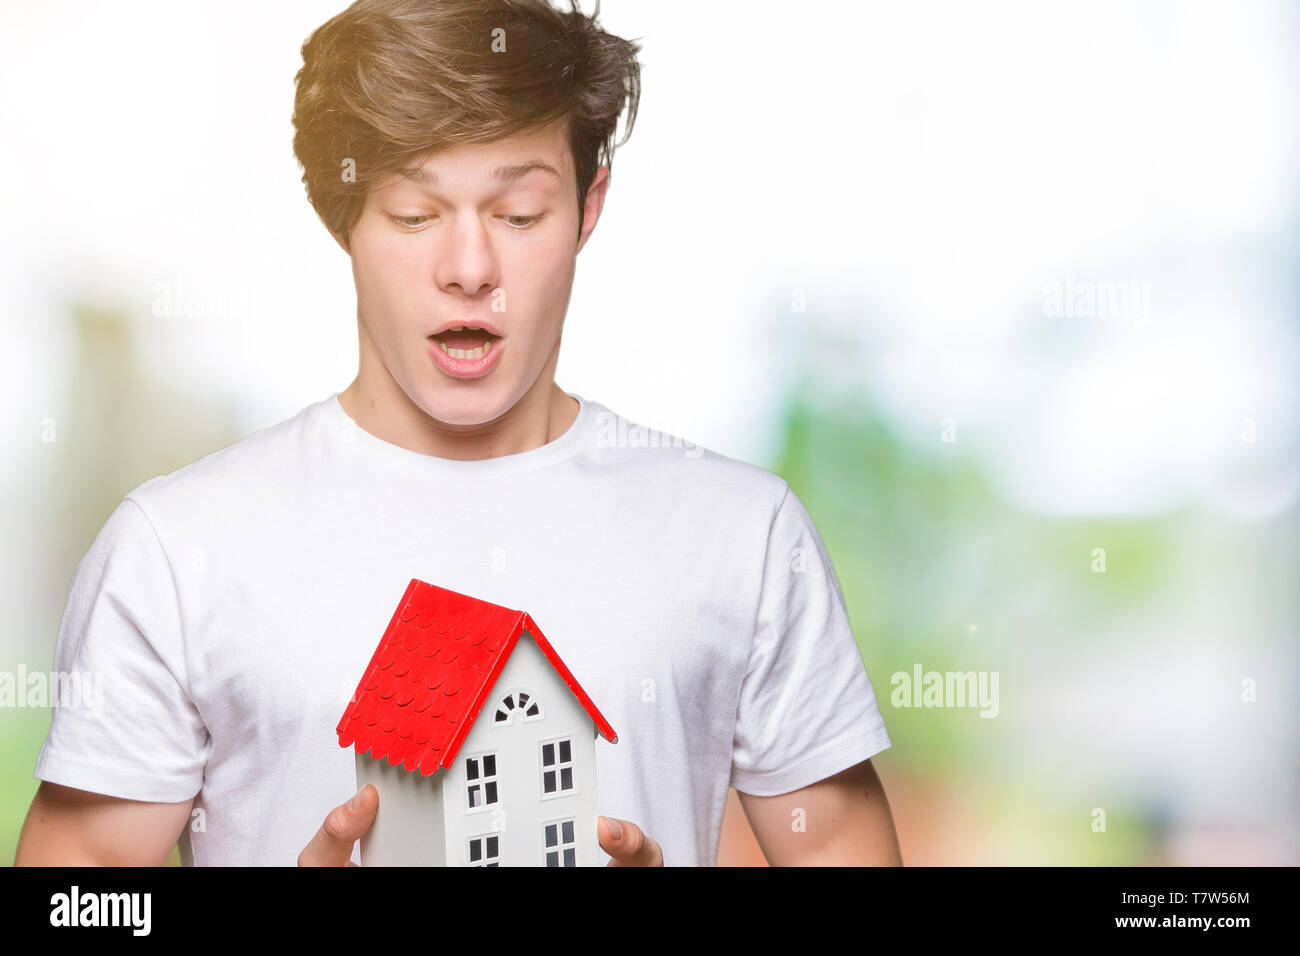 Young man holding house over isolated background scared in shock with a surprise face, afraid and excited with fear expression - Stock Image